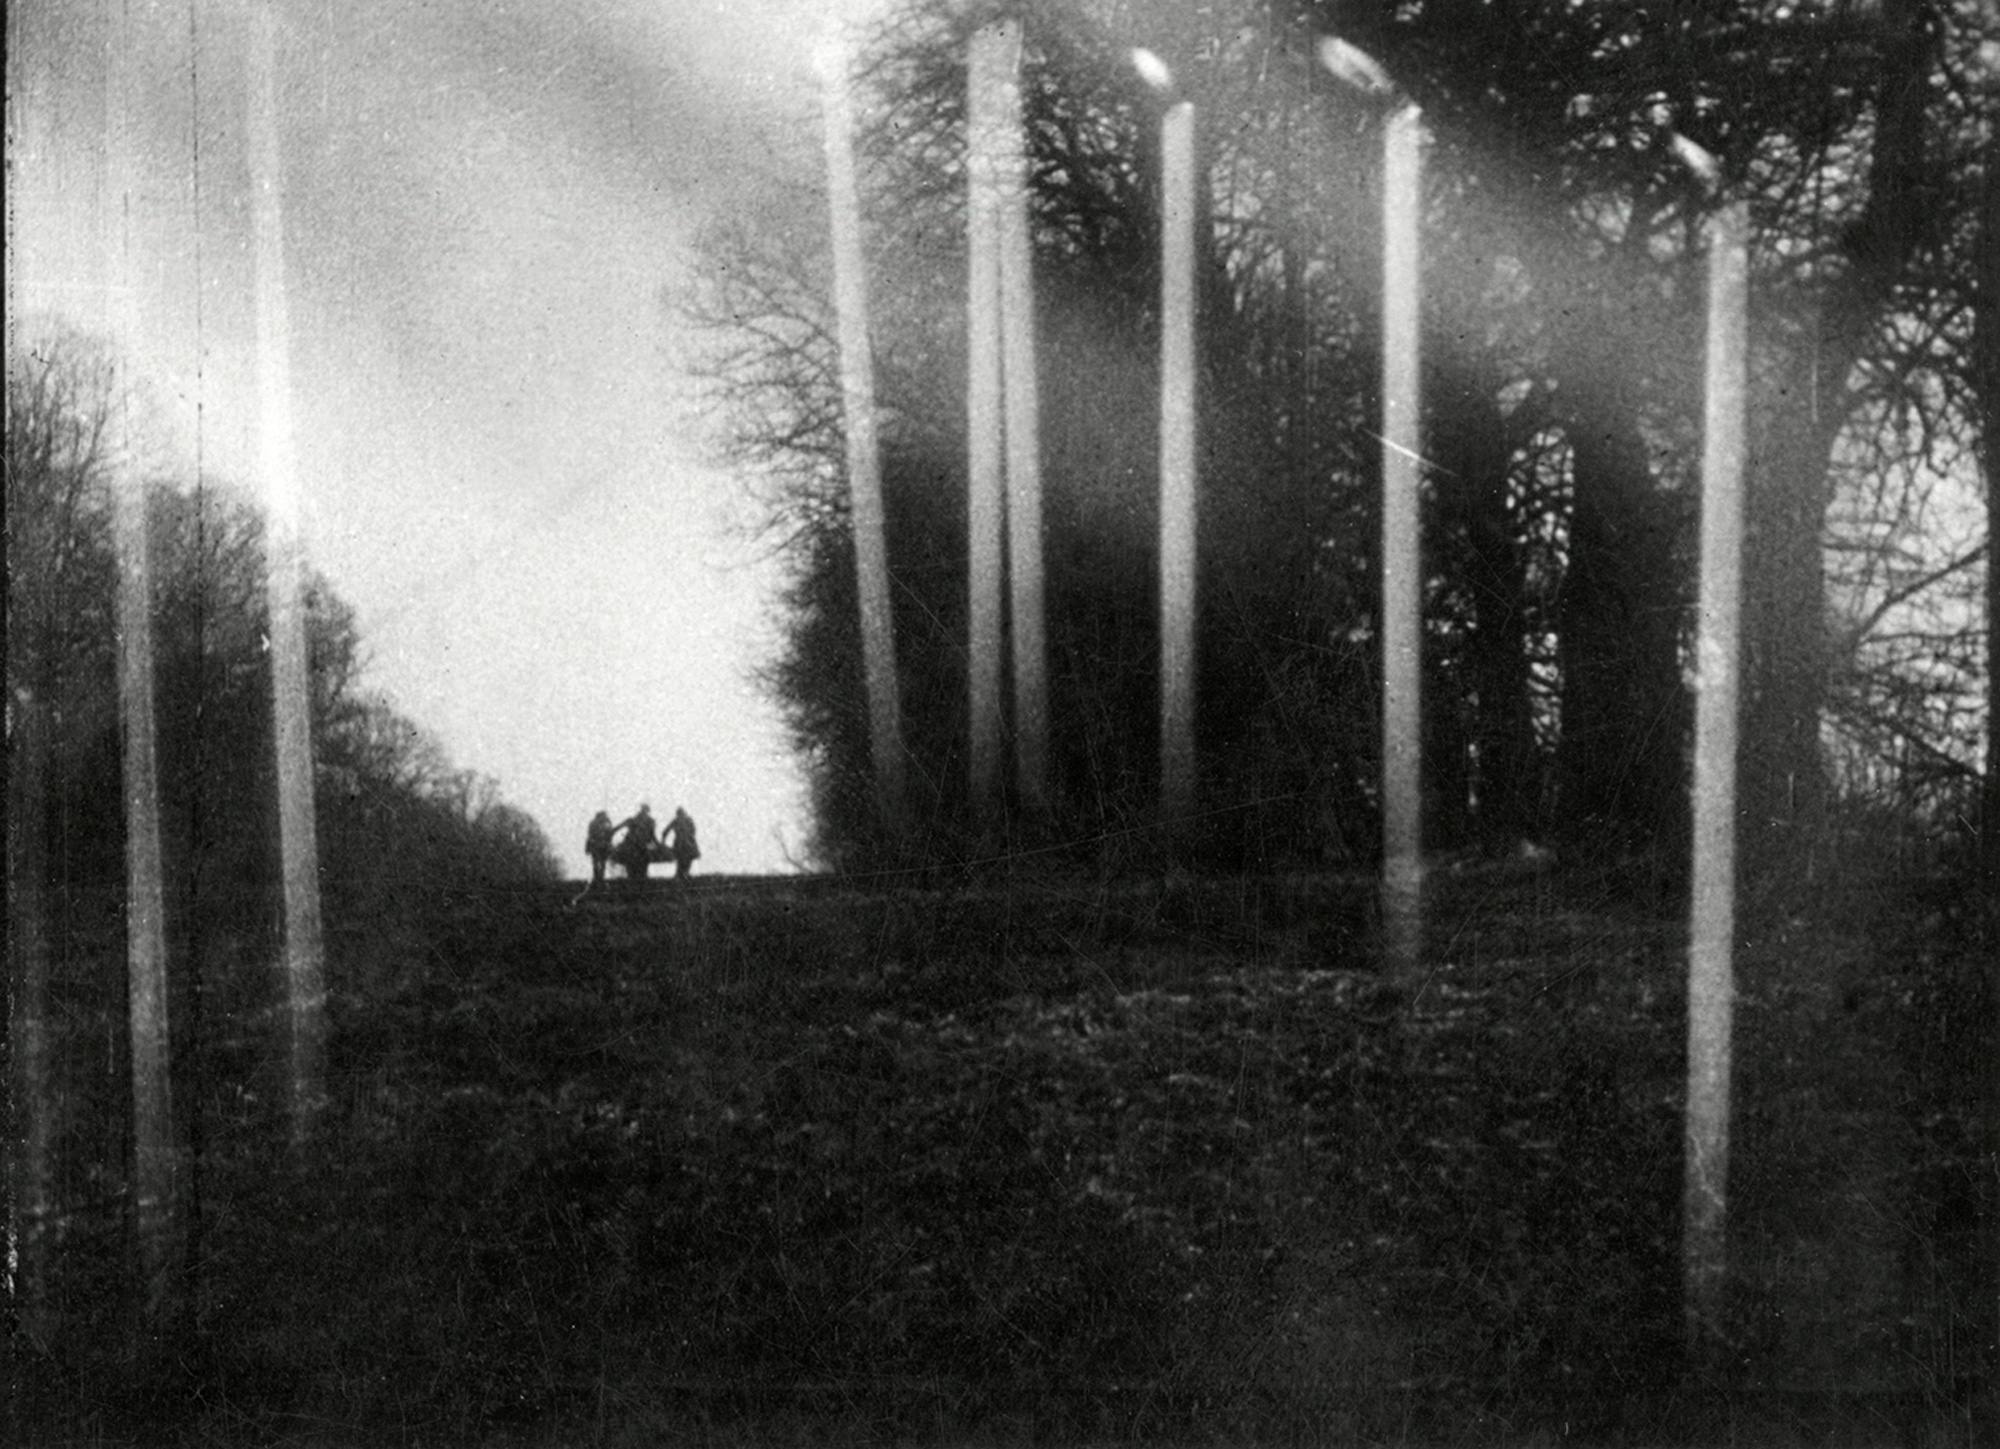 The funeral cortege with superimposed candles in The Fall of the House of Usher (1928)